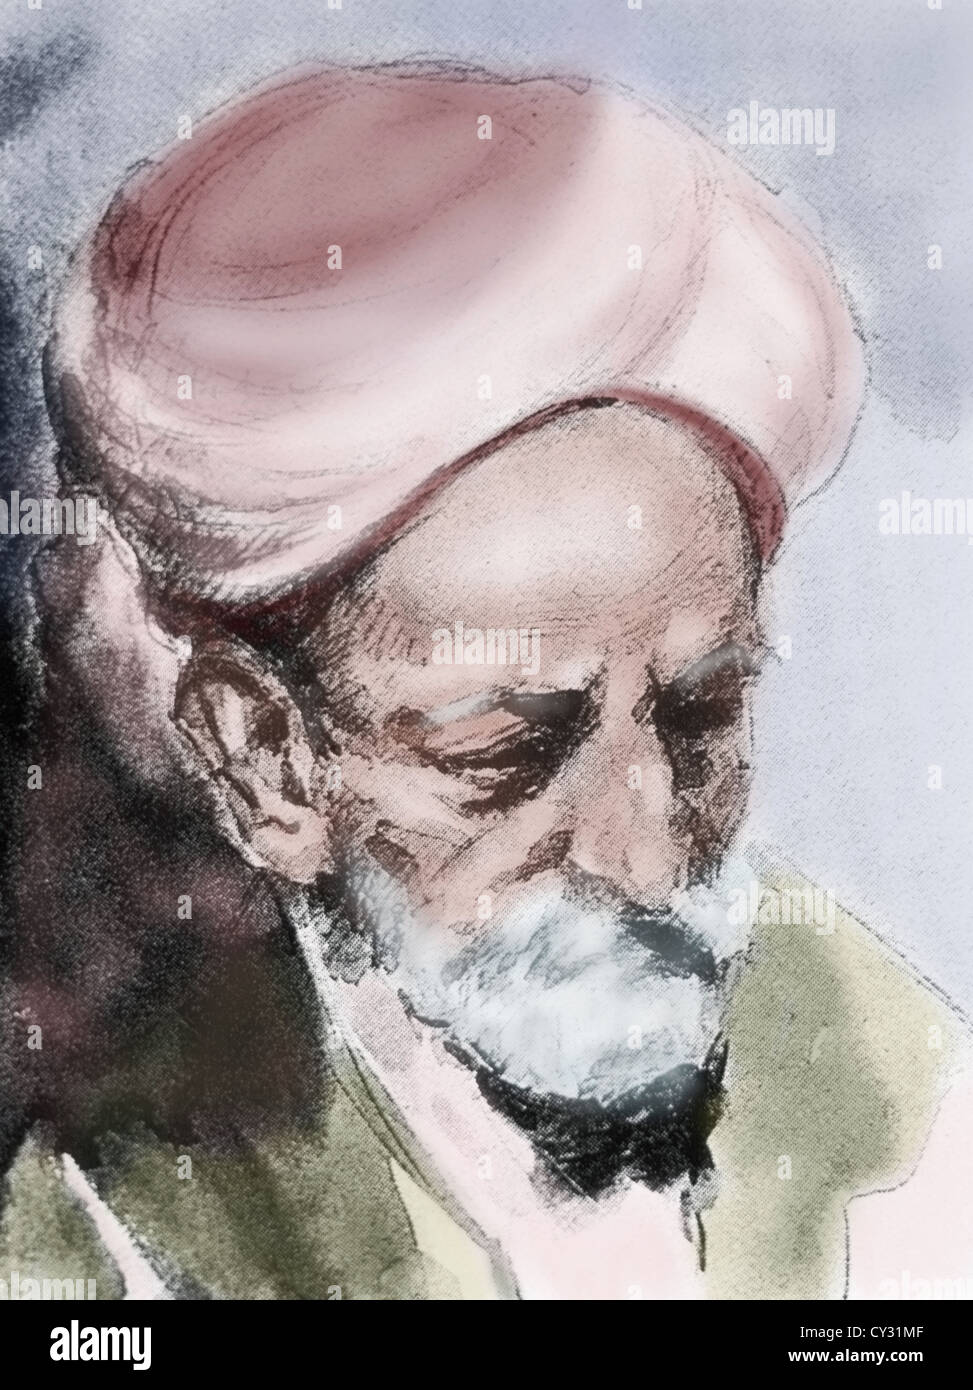 Ibn Arabi High Resolution Stock Photography and Images - Alamy